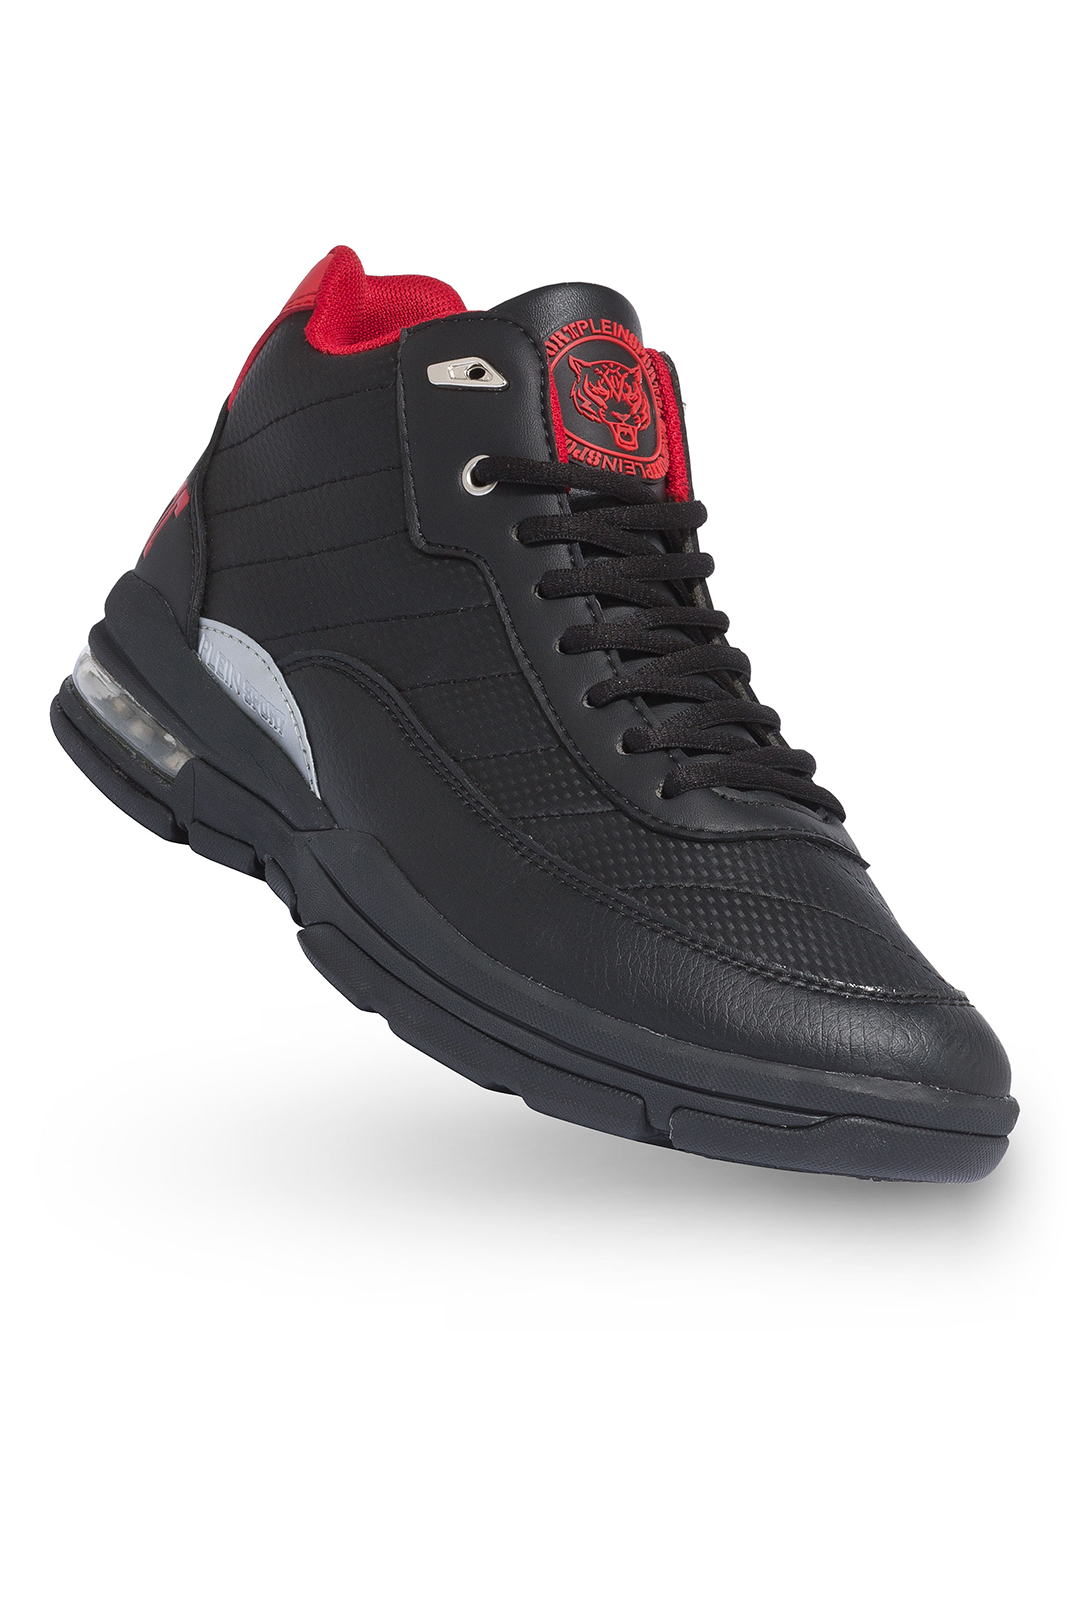 Baskets / Sport  Plein Sport P17S MSC0297 BLACK NICKEL